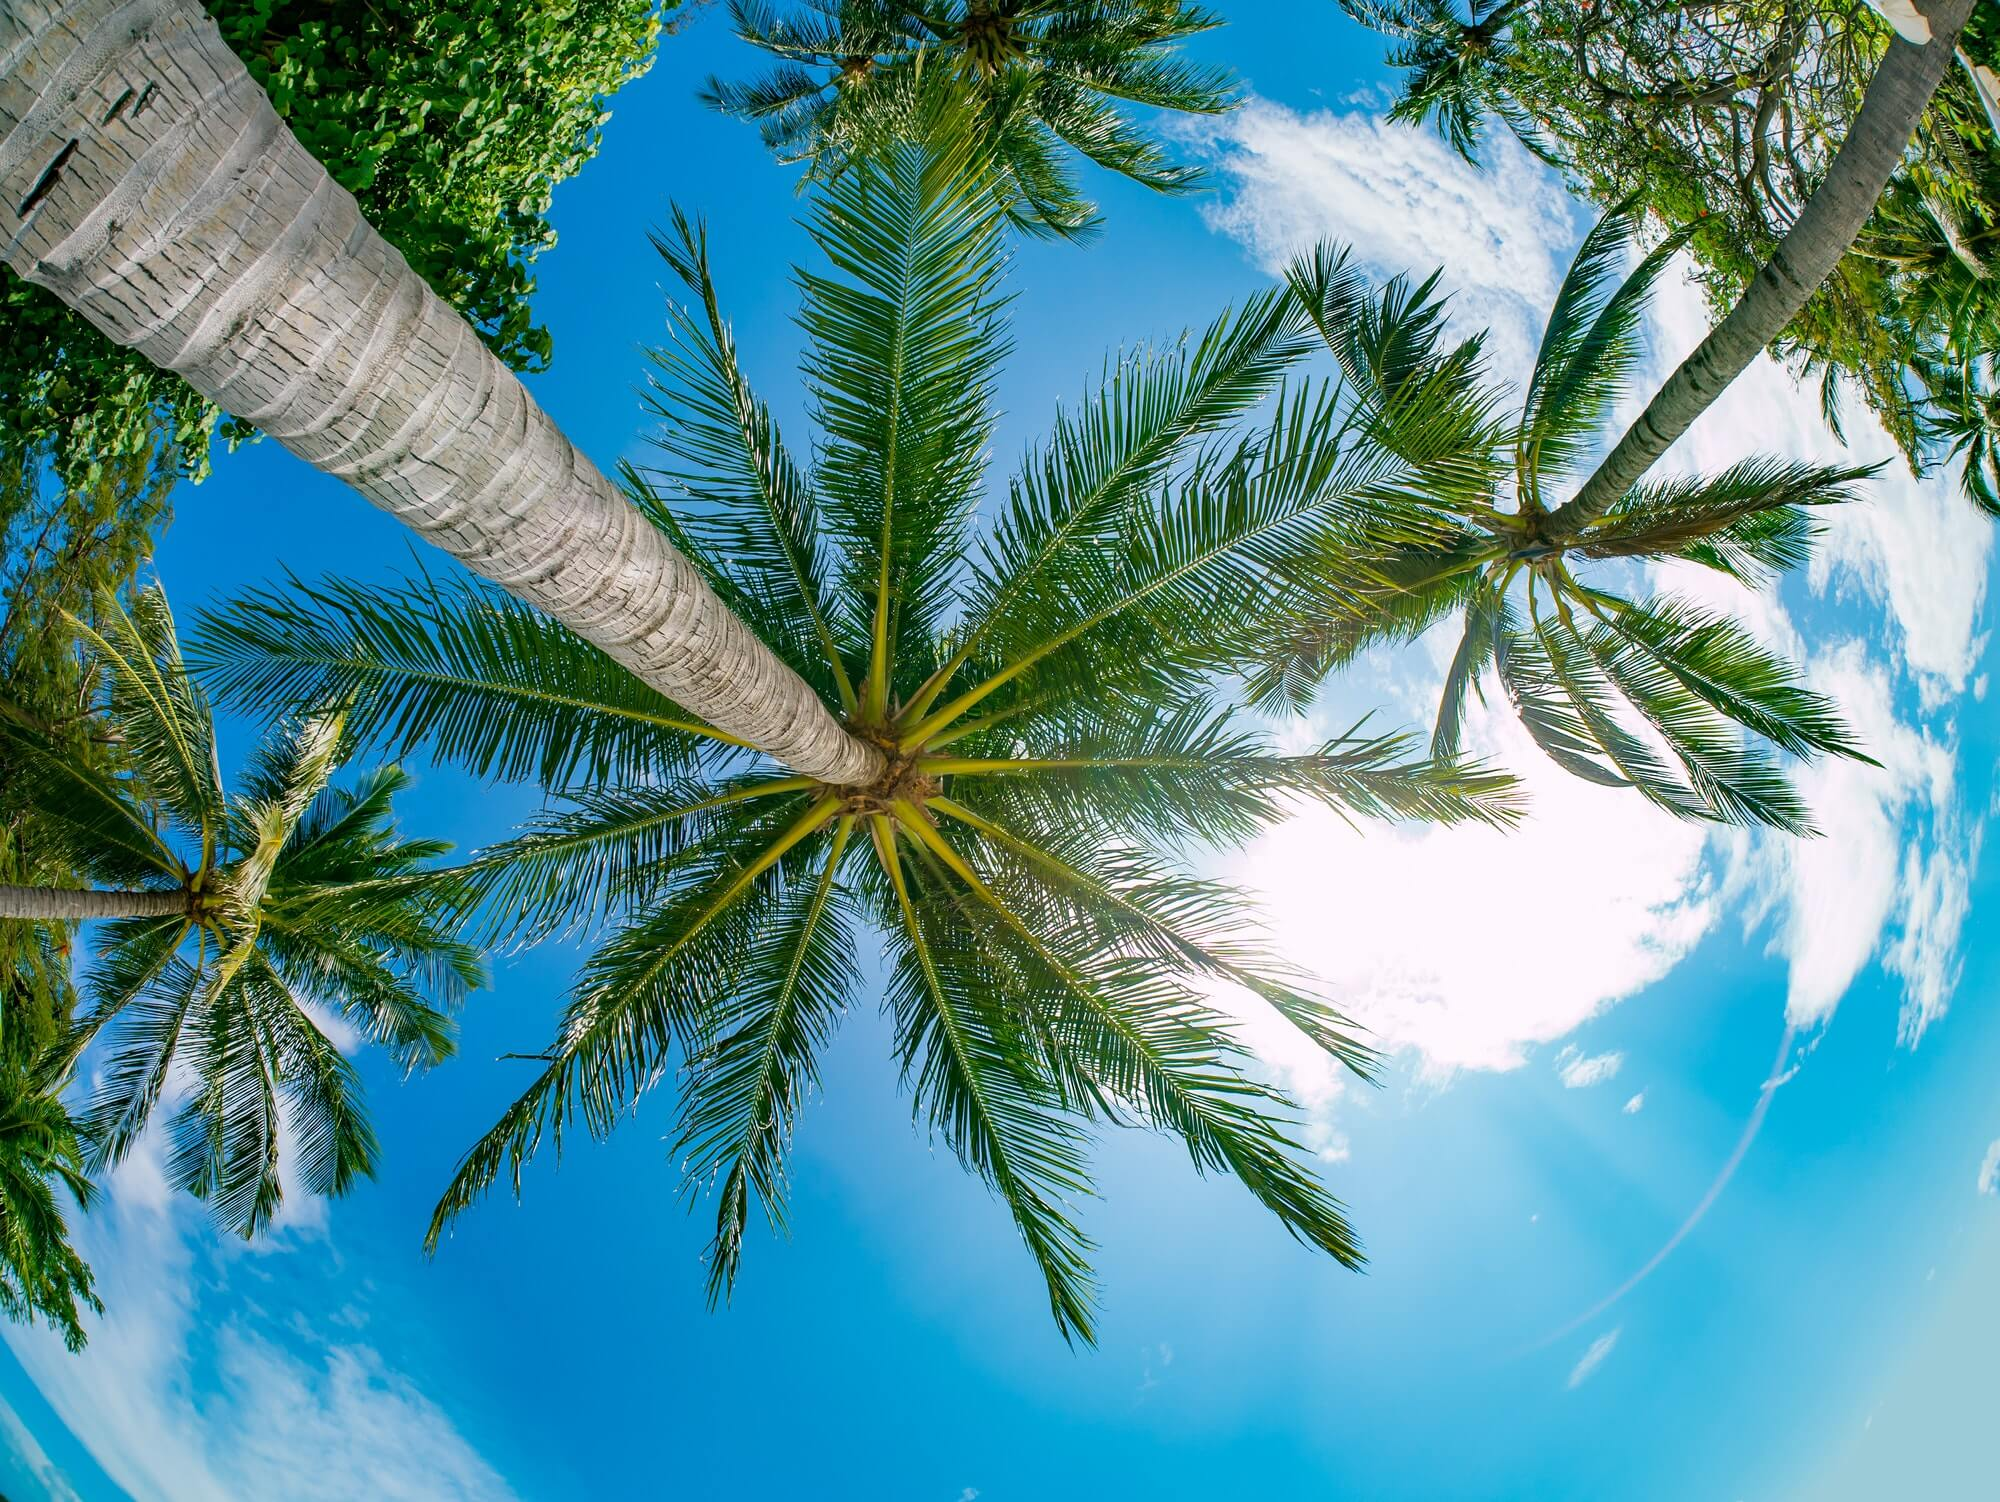 Coconut palm trees perspective